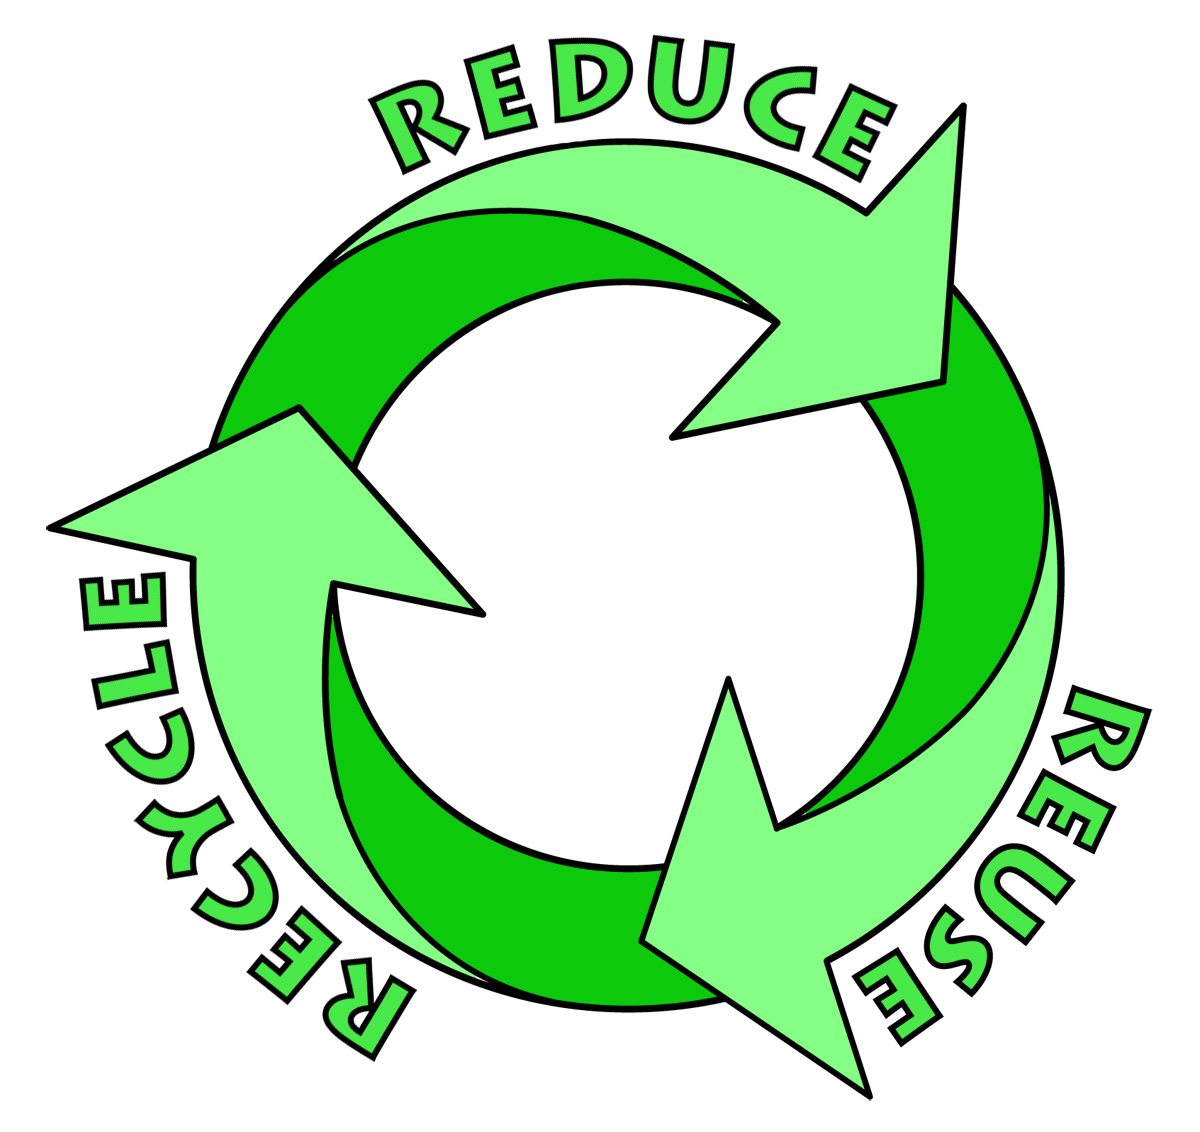 Recycle Image Free Download Best Recycle Image On Clipartmag